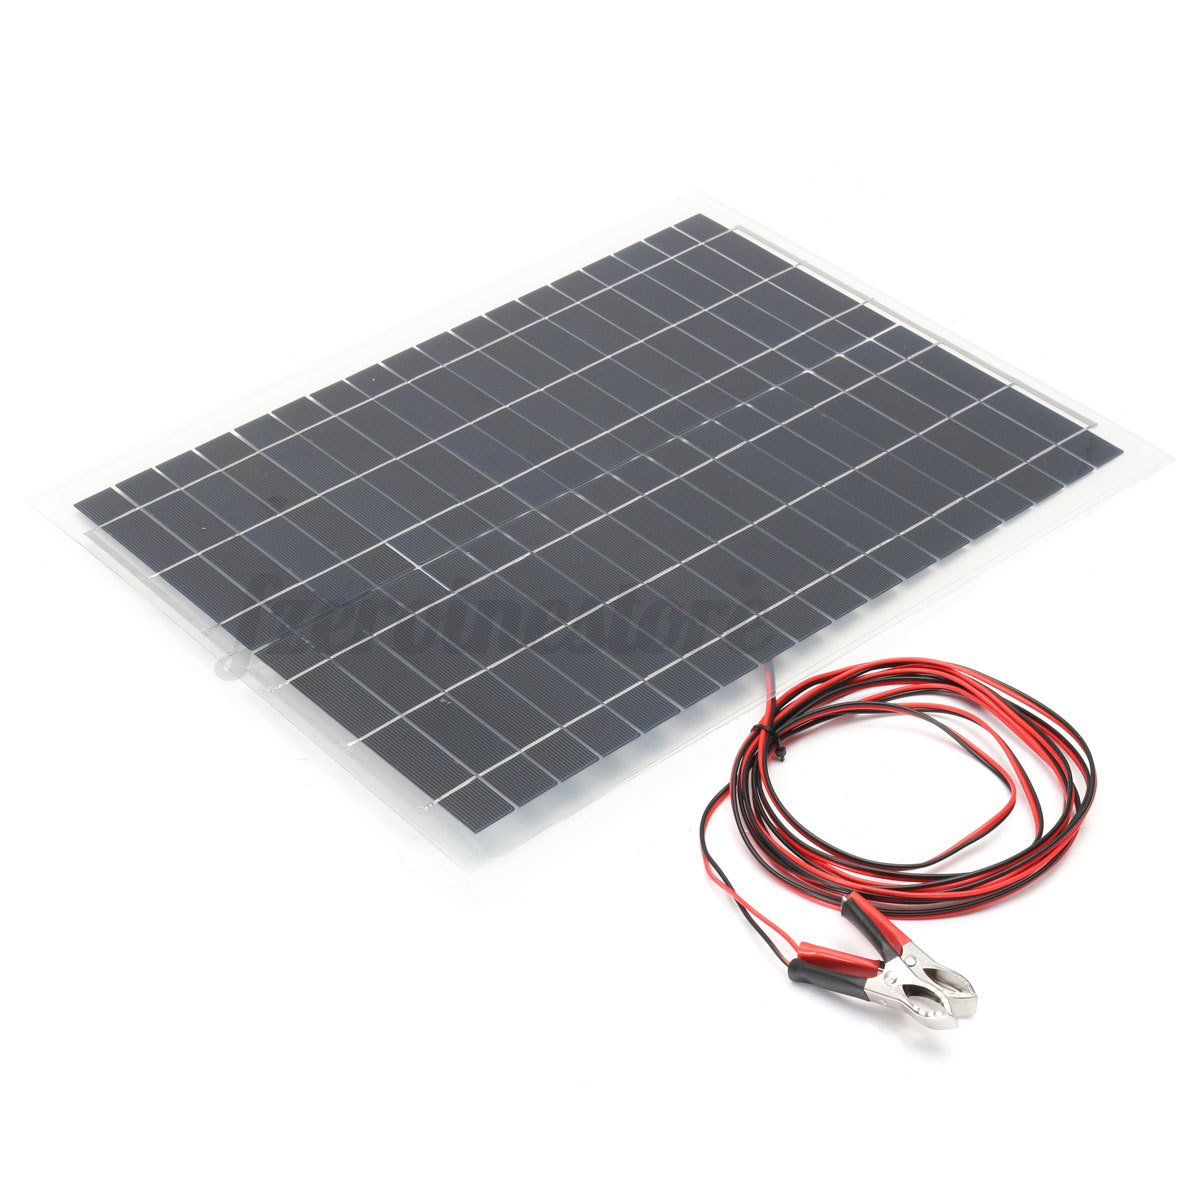 rv solar software testing life cycle diagram 20w 12v flexible panel kit 4m cable for battery